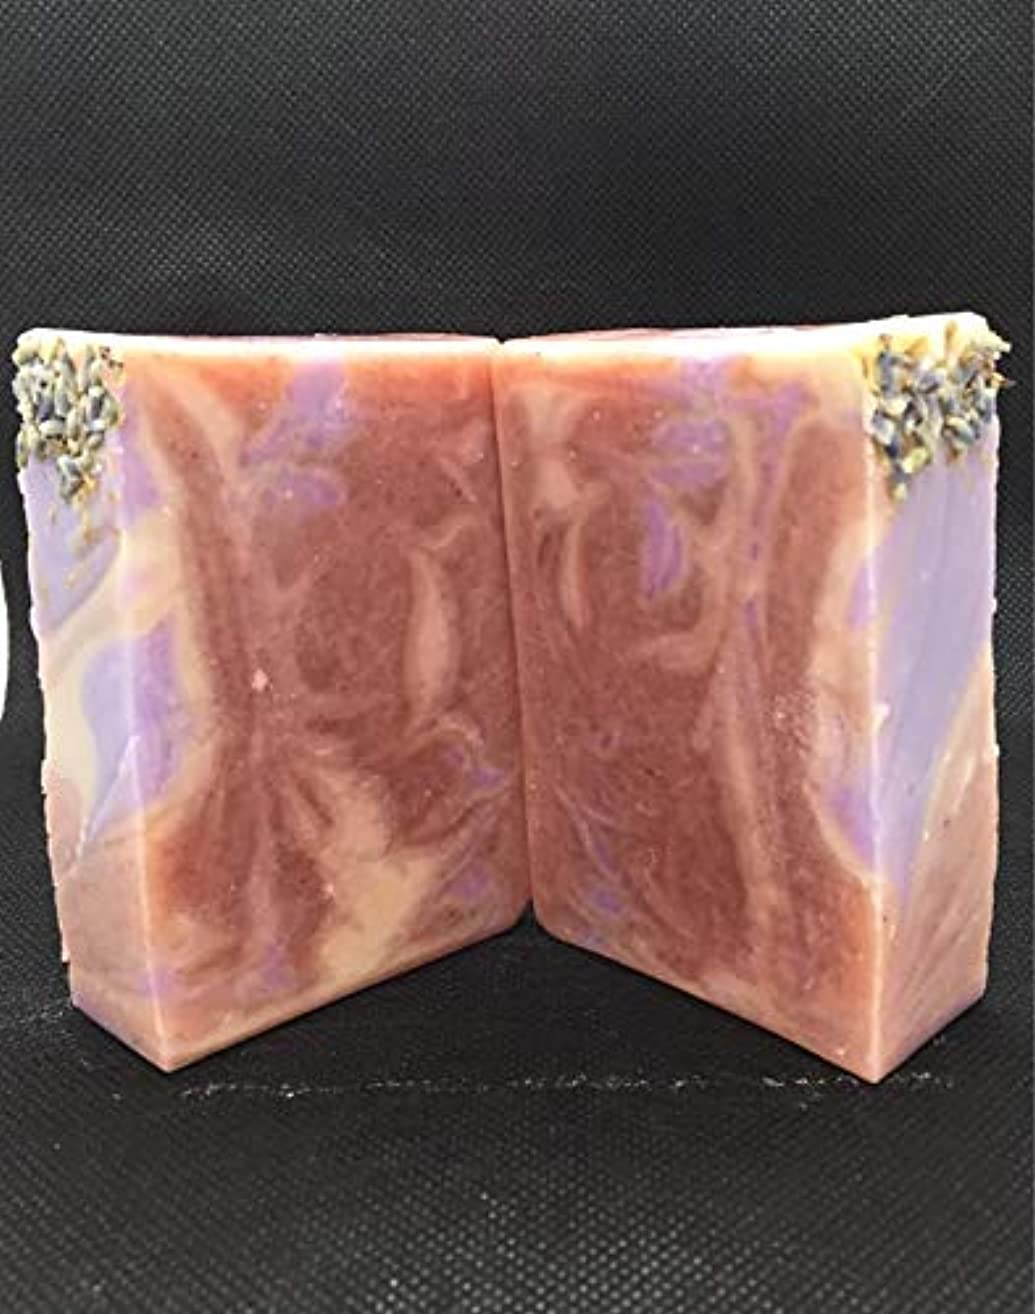 Lavender Soap | Vegan Soap | Palm Free Soap | Zero Waste Vegan | Coconut Milk Soap | Floral Soap | Moisturizing Soap | Organic Soap